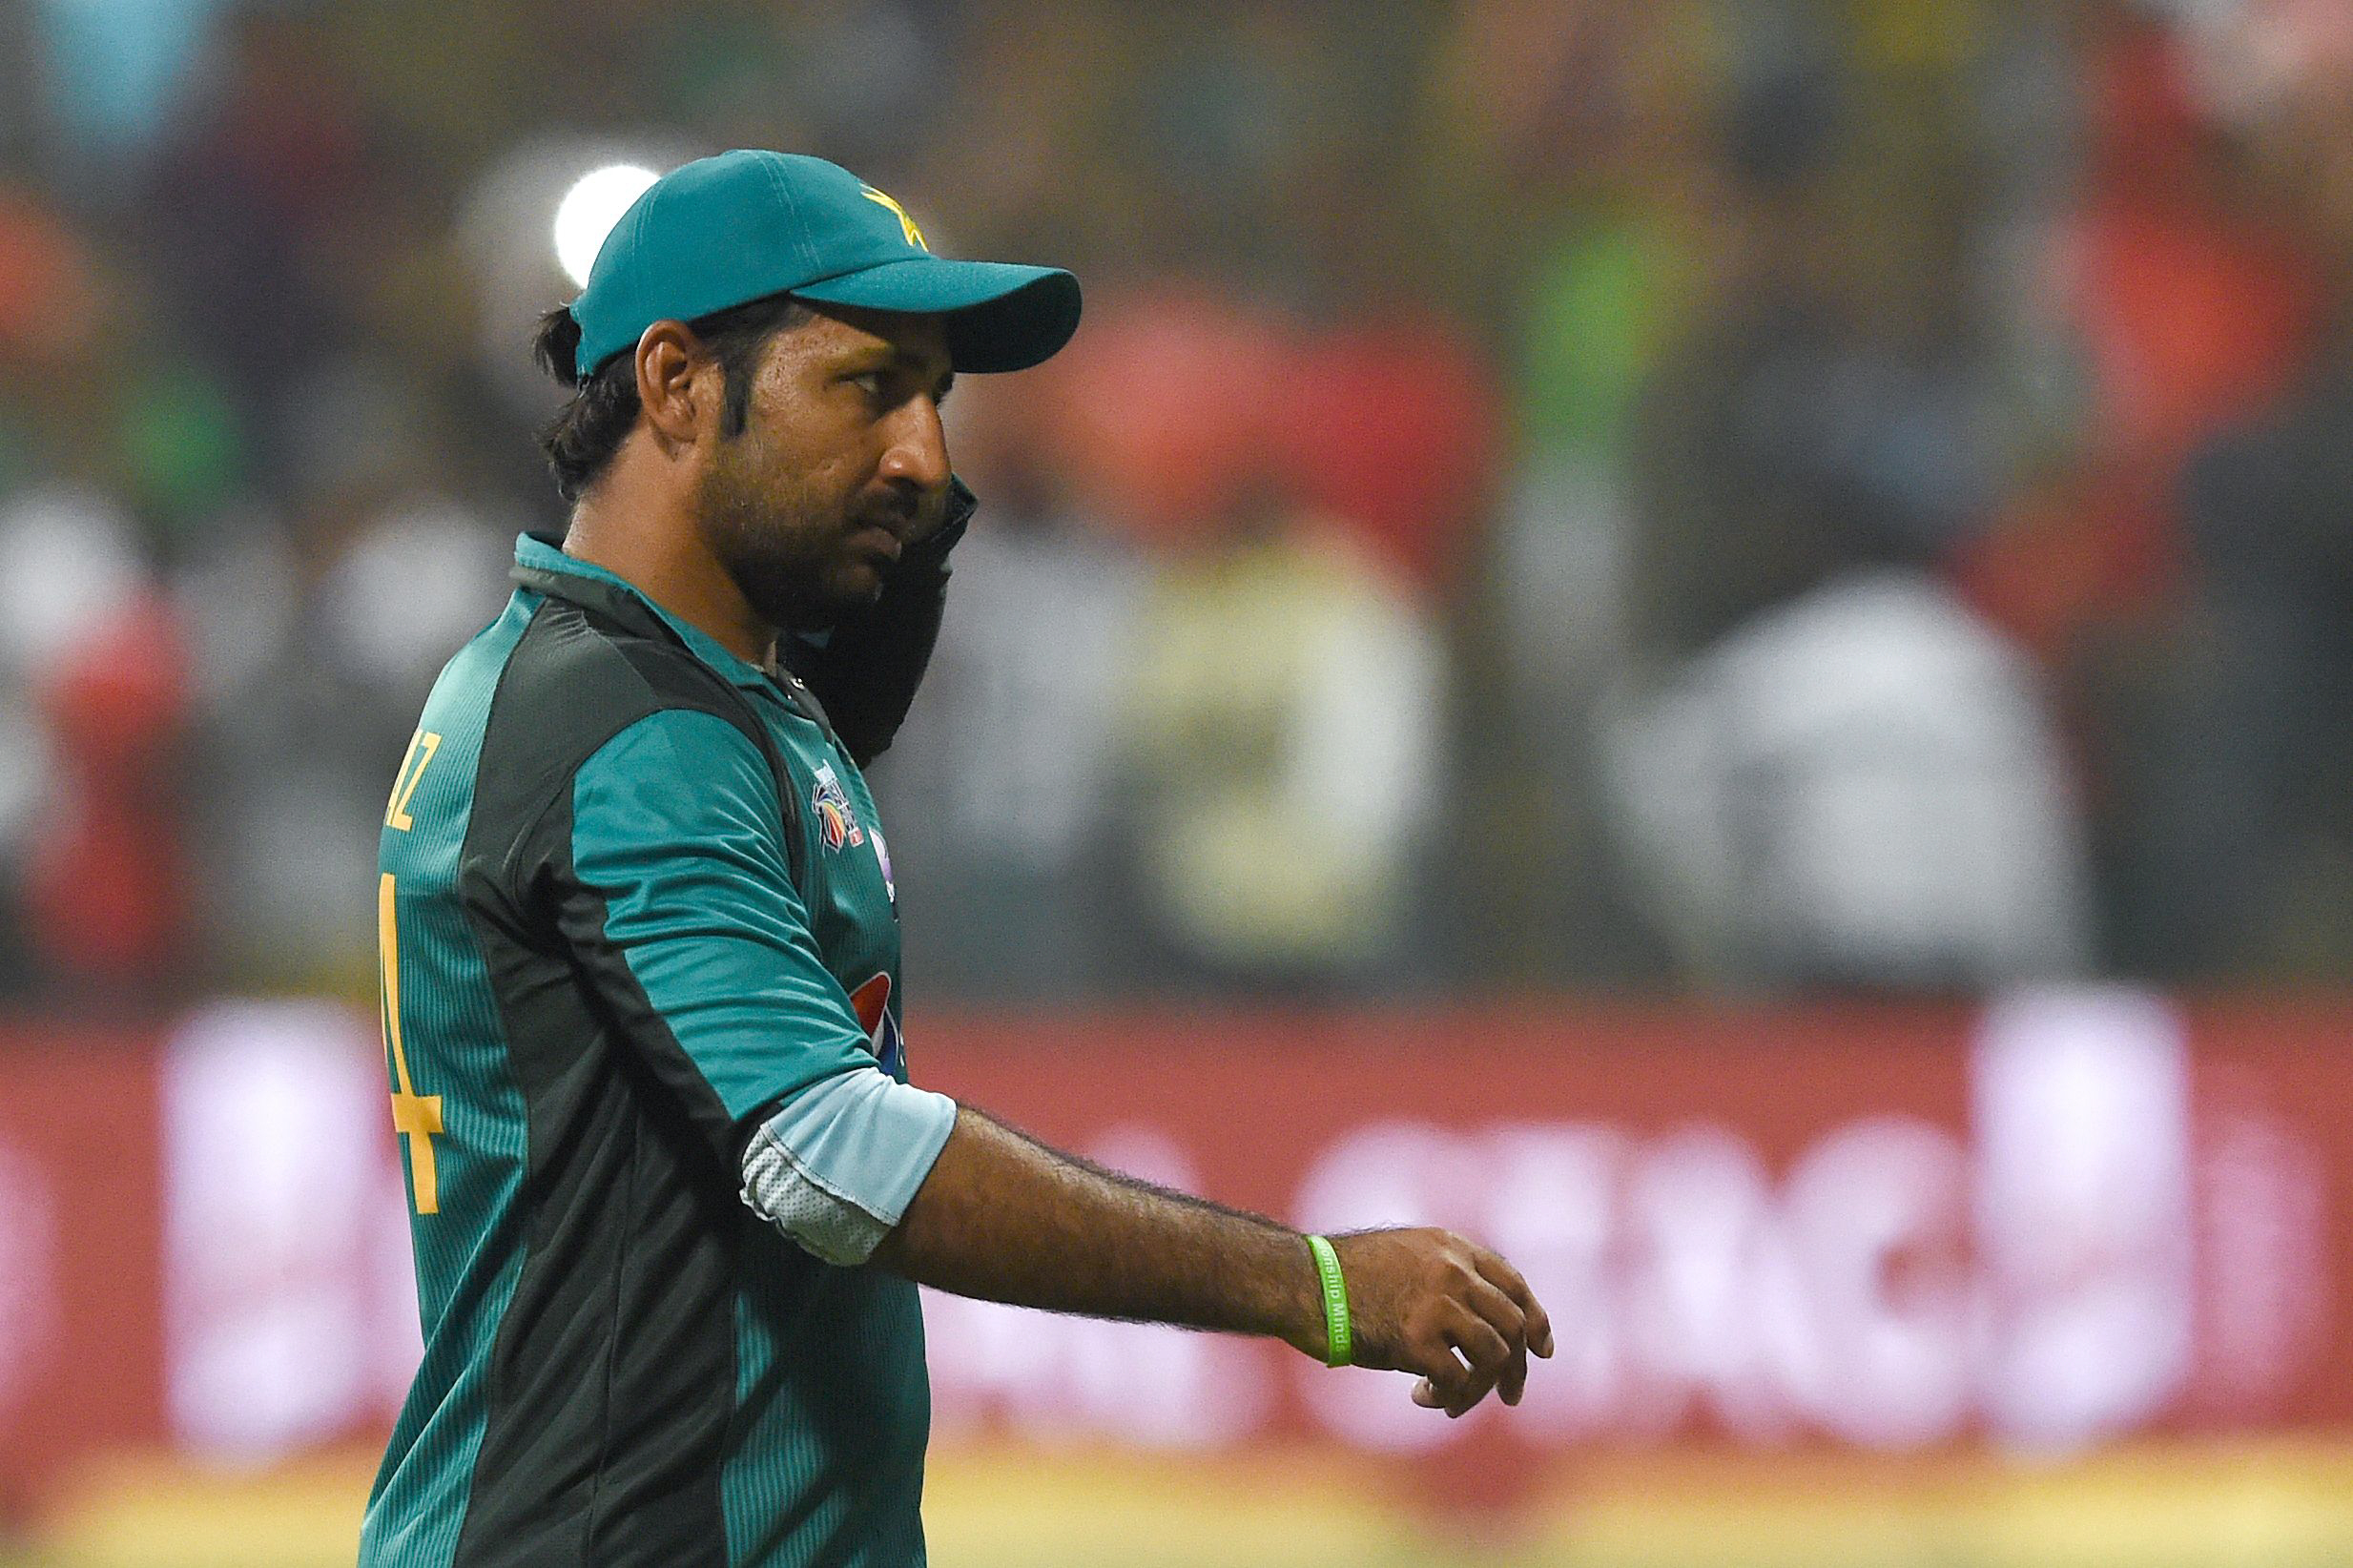 Pakistan captain Sarfraz Ahmed looks on after Bangladesh won by 37 runs during the one day international (ODI) Asia Cup cricket match between Bangladesh and Pakistan at the Sheikh Zayed Stadium in Abu Dhabi